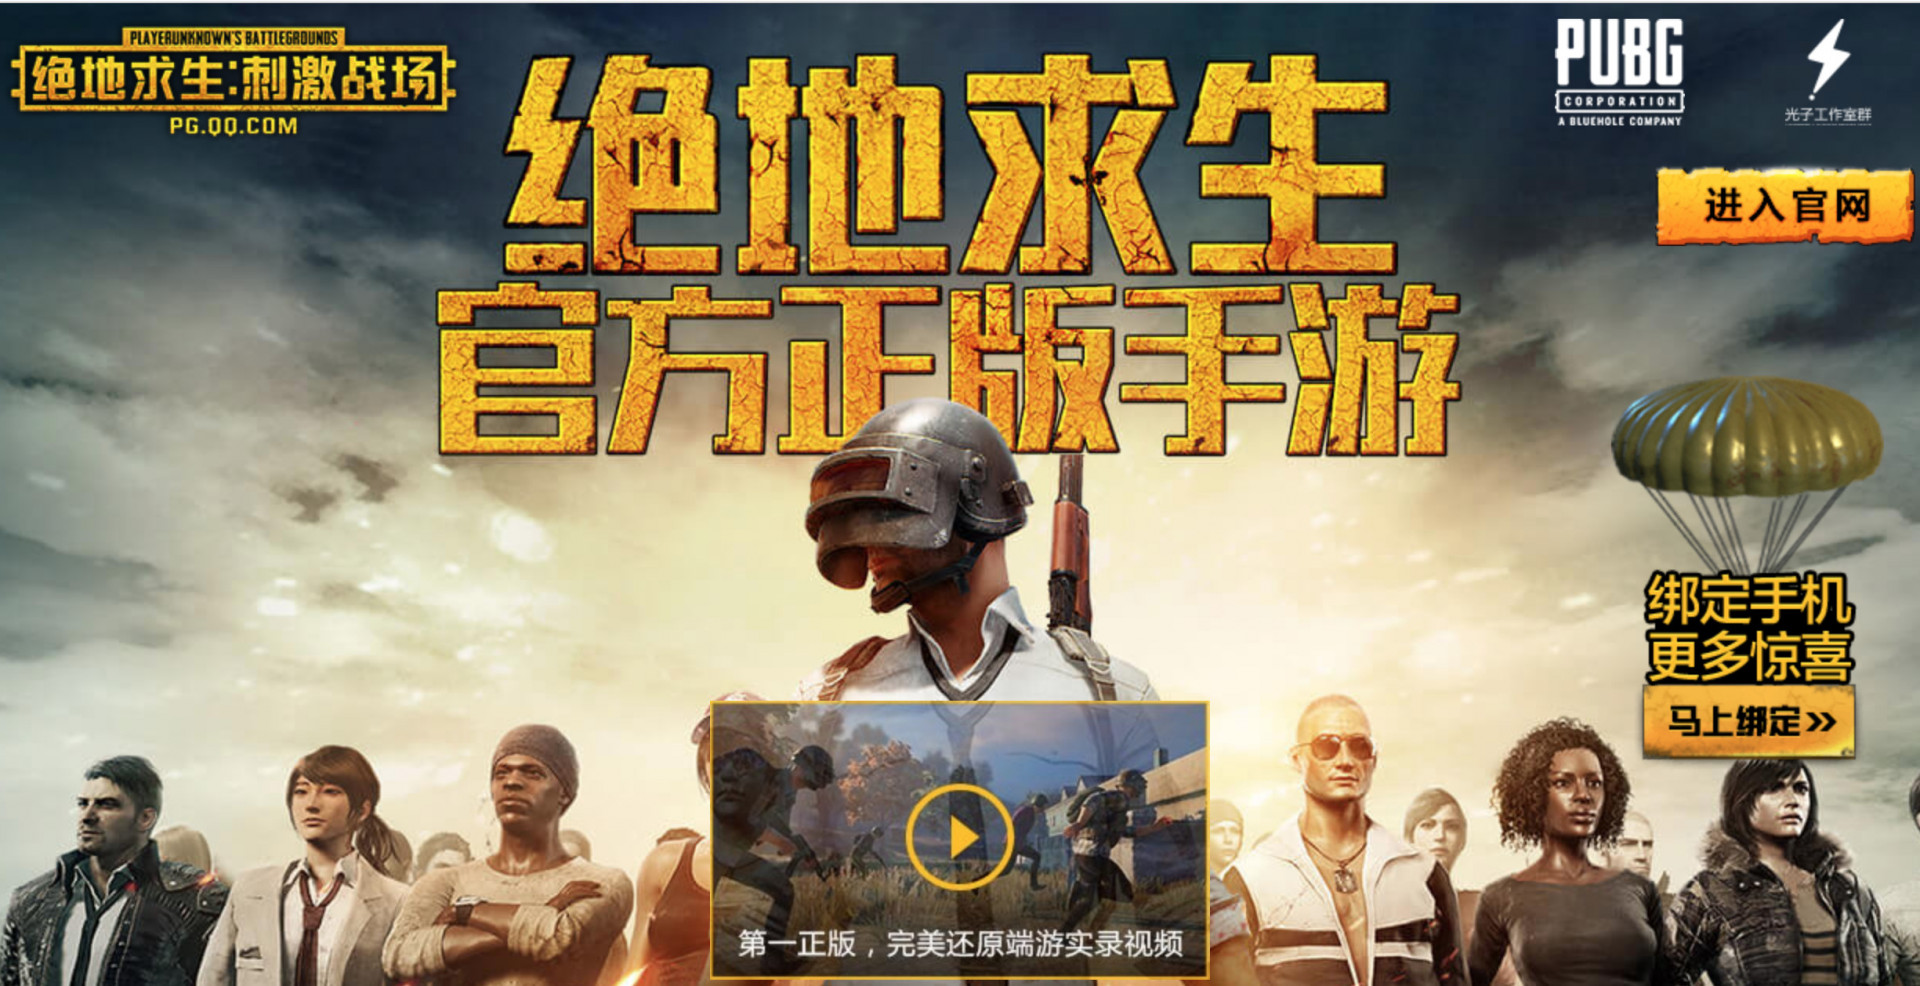 Early Access To Chinese Mobile Version Of Pubg Opens Tomorrow Technode - early access to chinese mobile version of pubg opens tomorrow